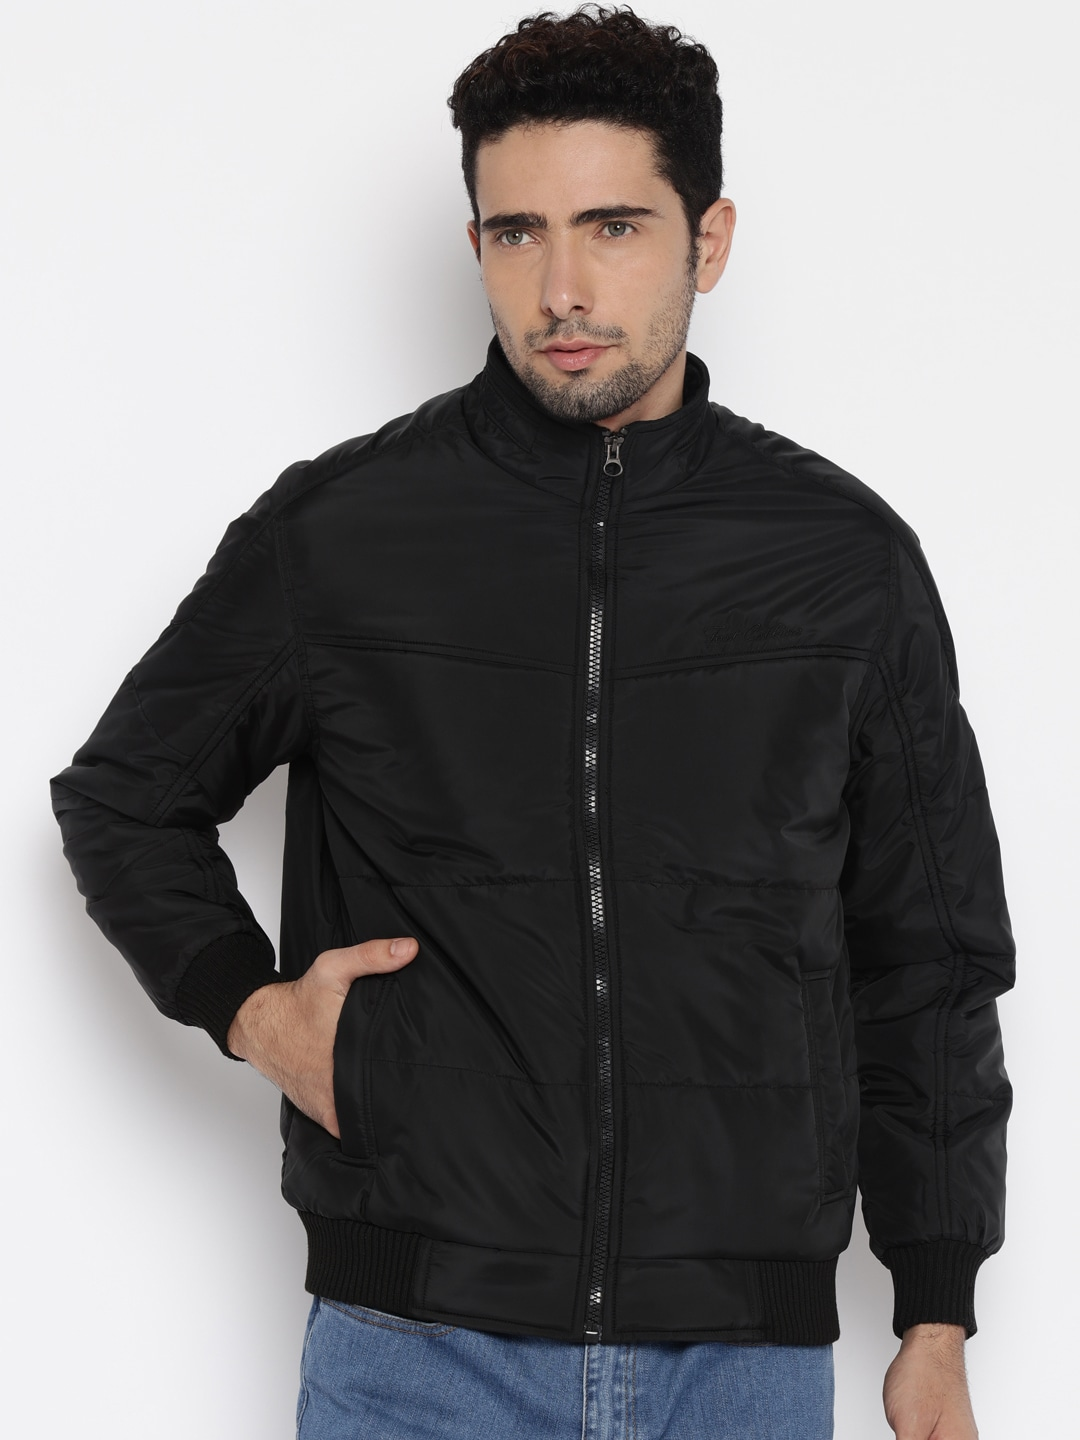 Jackets for Men - Buy Men's Jackets Online - Myntra